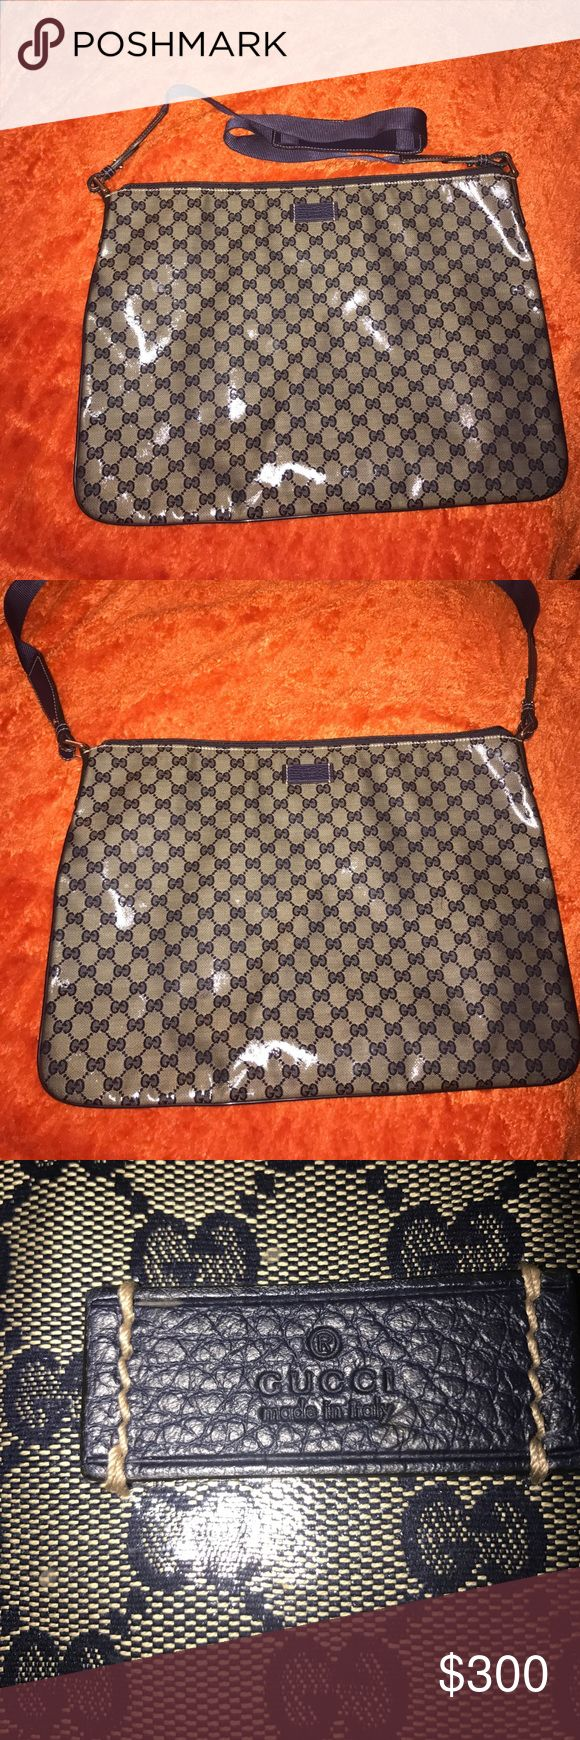 Large Gucci messenger bag Large crystal coated canvas and leather Gucci messenger bag. Big enough to fit a laptop in. I bought it for a diaper bag. However having three kids under 5 this bag was too small for  🤷🏽♀️ my needs. Price is FiRM! Bag has never been worn. Brand new without tags. Gucci Bags Crossbody Bags